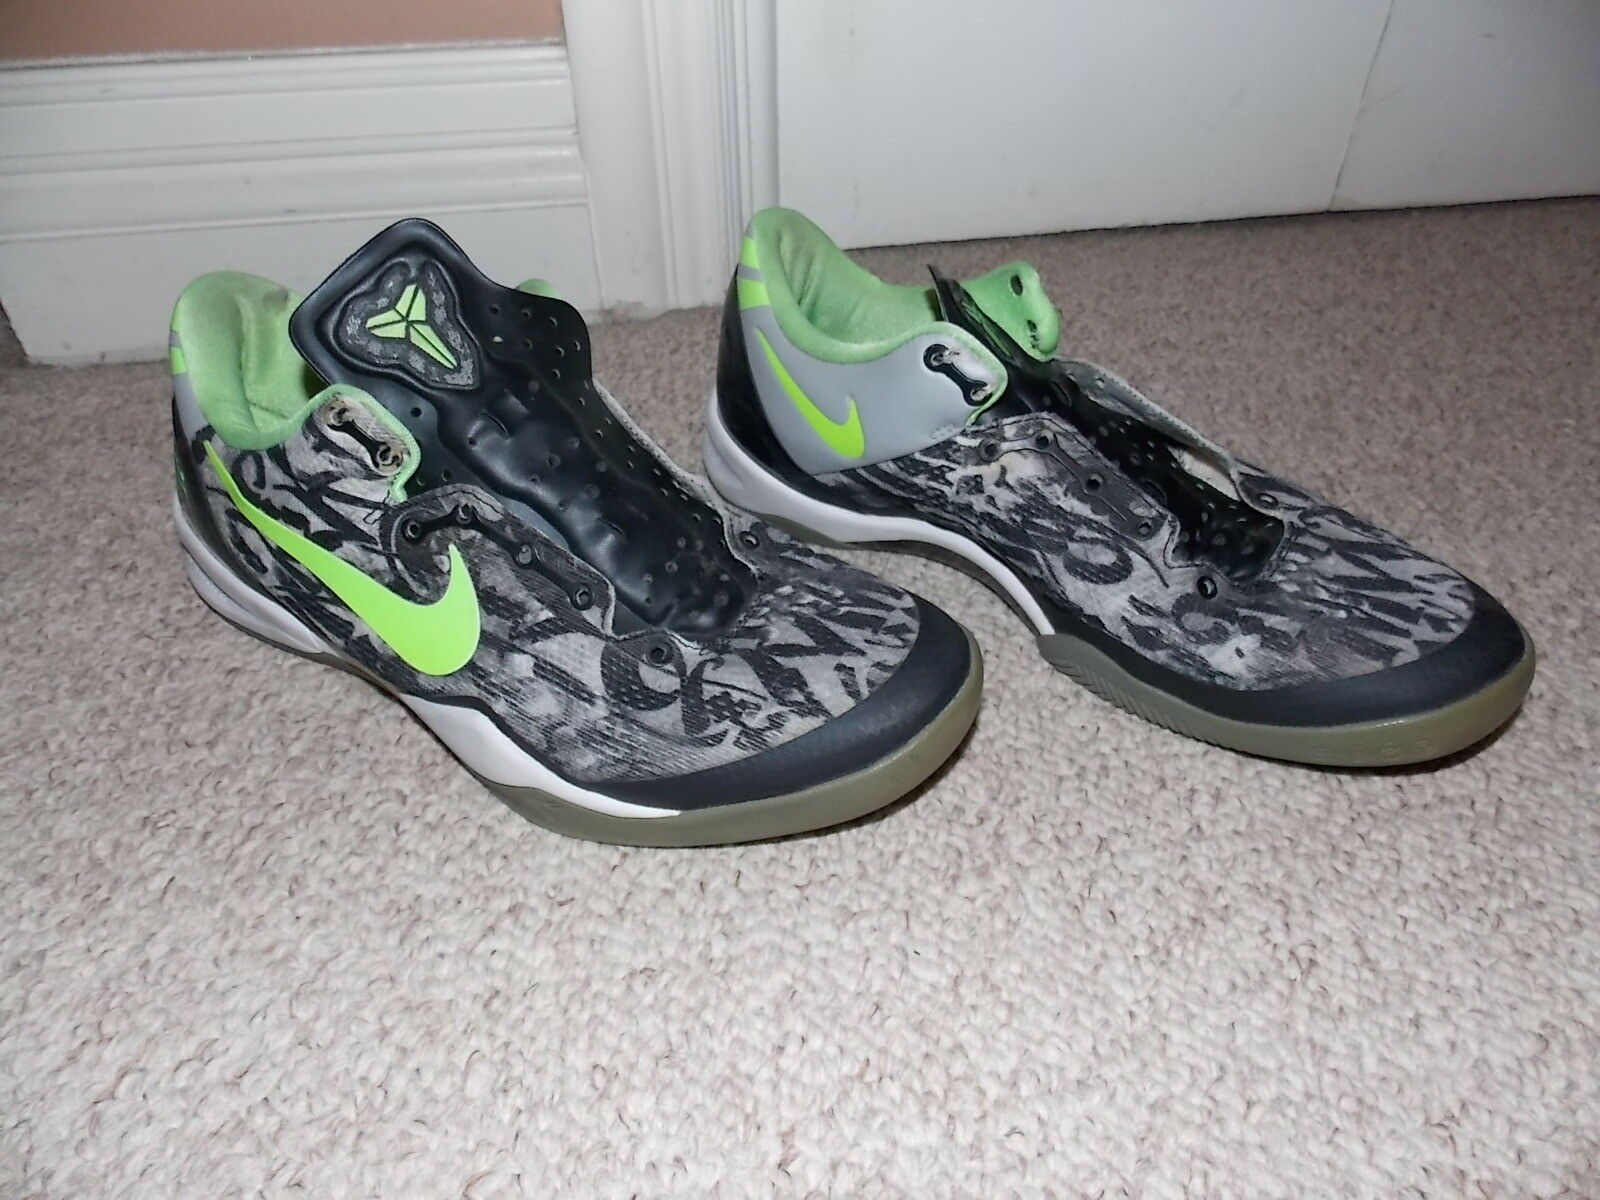 41a380e00a69f3 NIKE NIKE NIKE KOBE SYSTEM 8 VIII GS Graffiti White Black Grey Lime shoes  456365